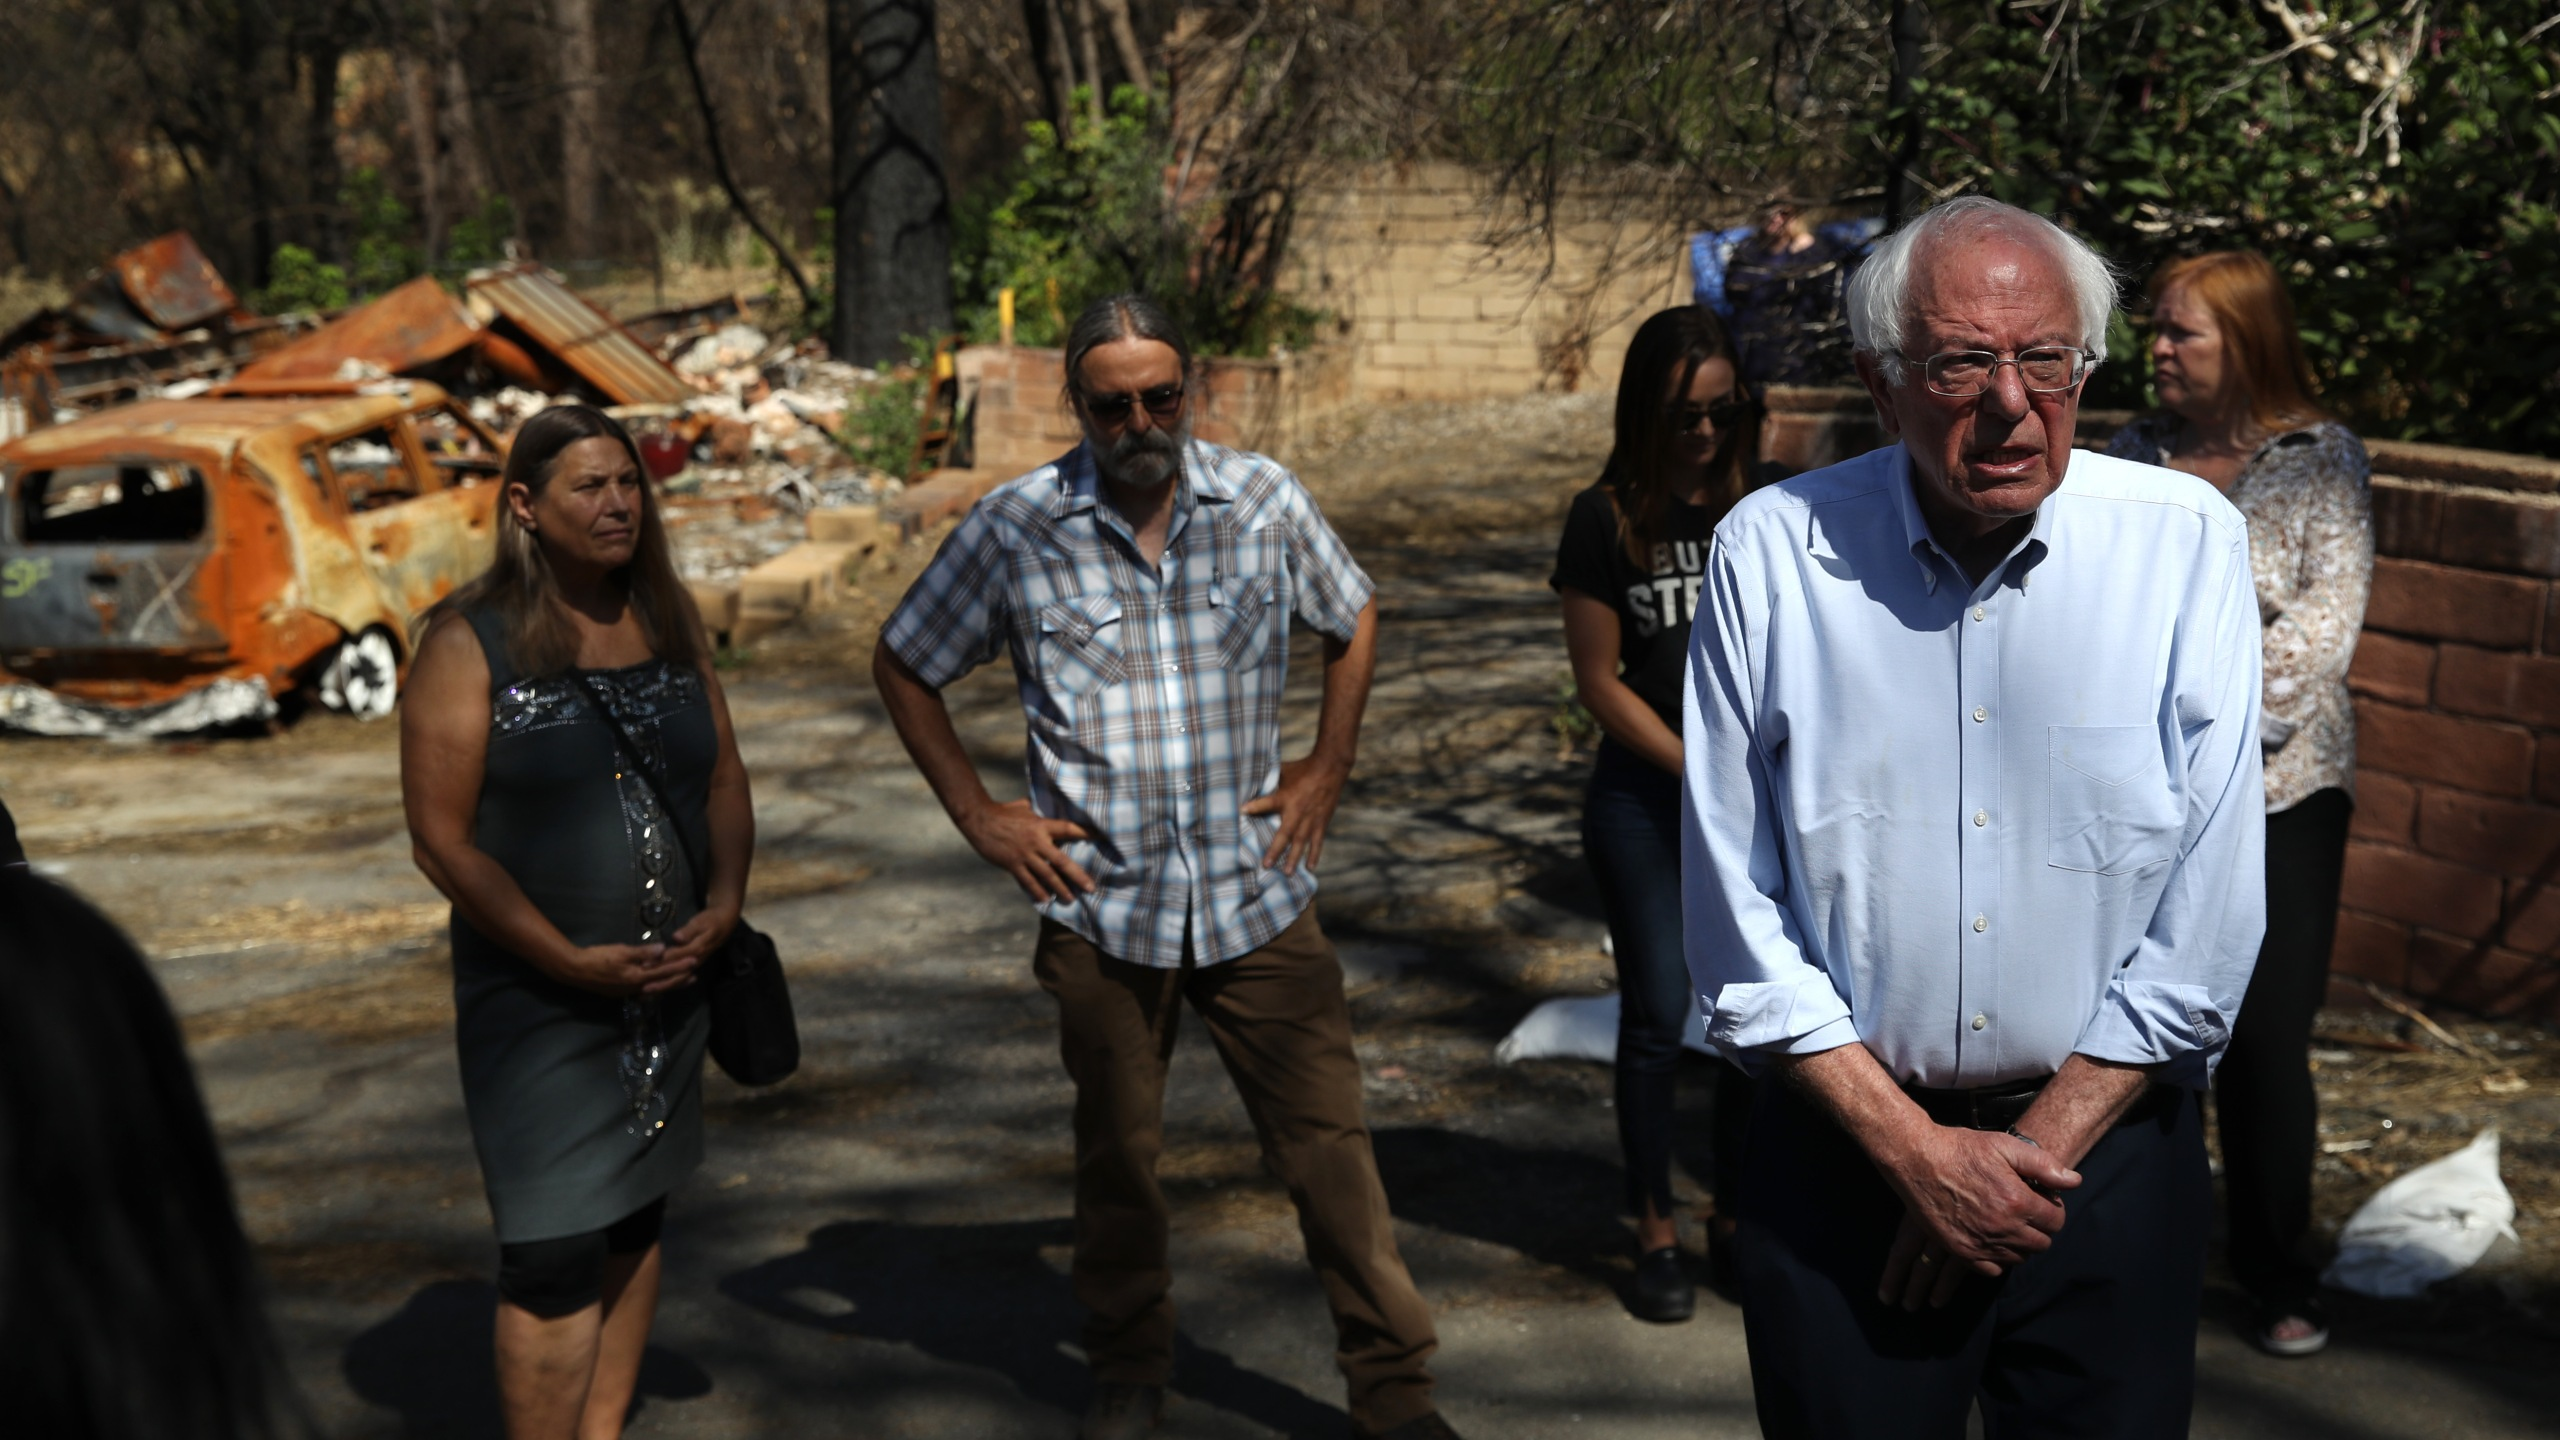 Democratic presidential candidate U.S. Sen. Bernie Sanders (I-VT) talks with members of the media as he tours a mobile home park that was destroyed by the Camp Fire on Aug. 22, 2019, in Paradise, Calif. (Credit: Justin Sullivan/Getty Images)